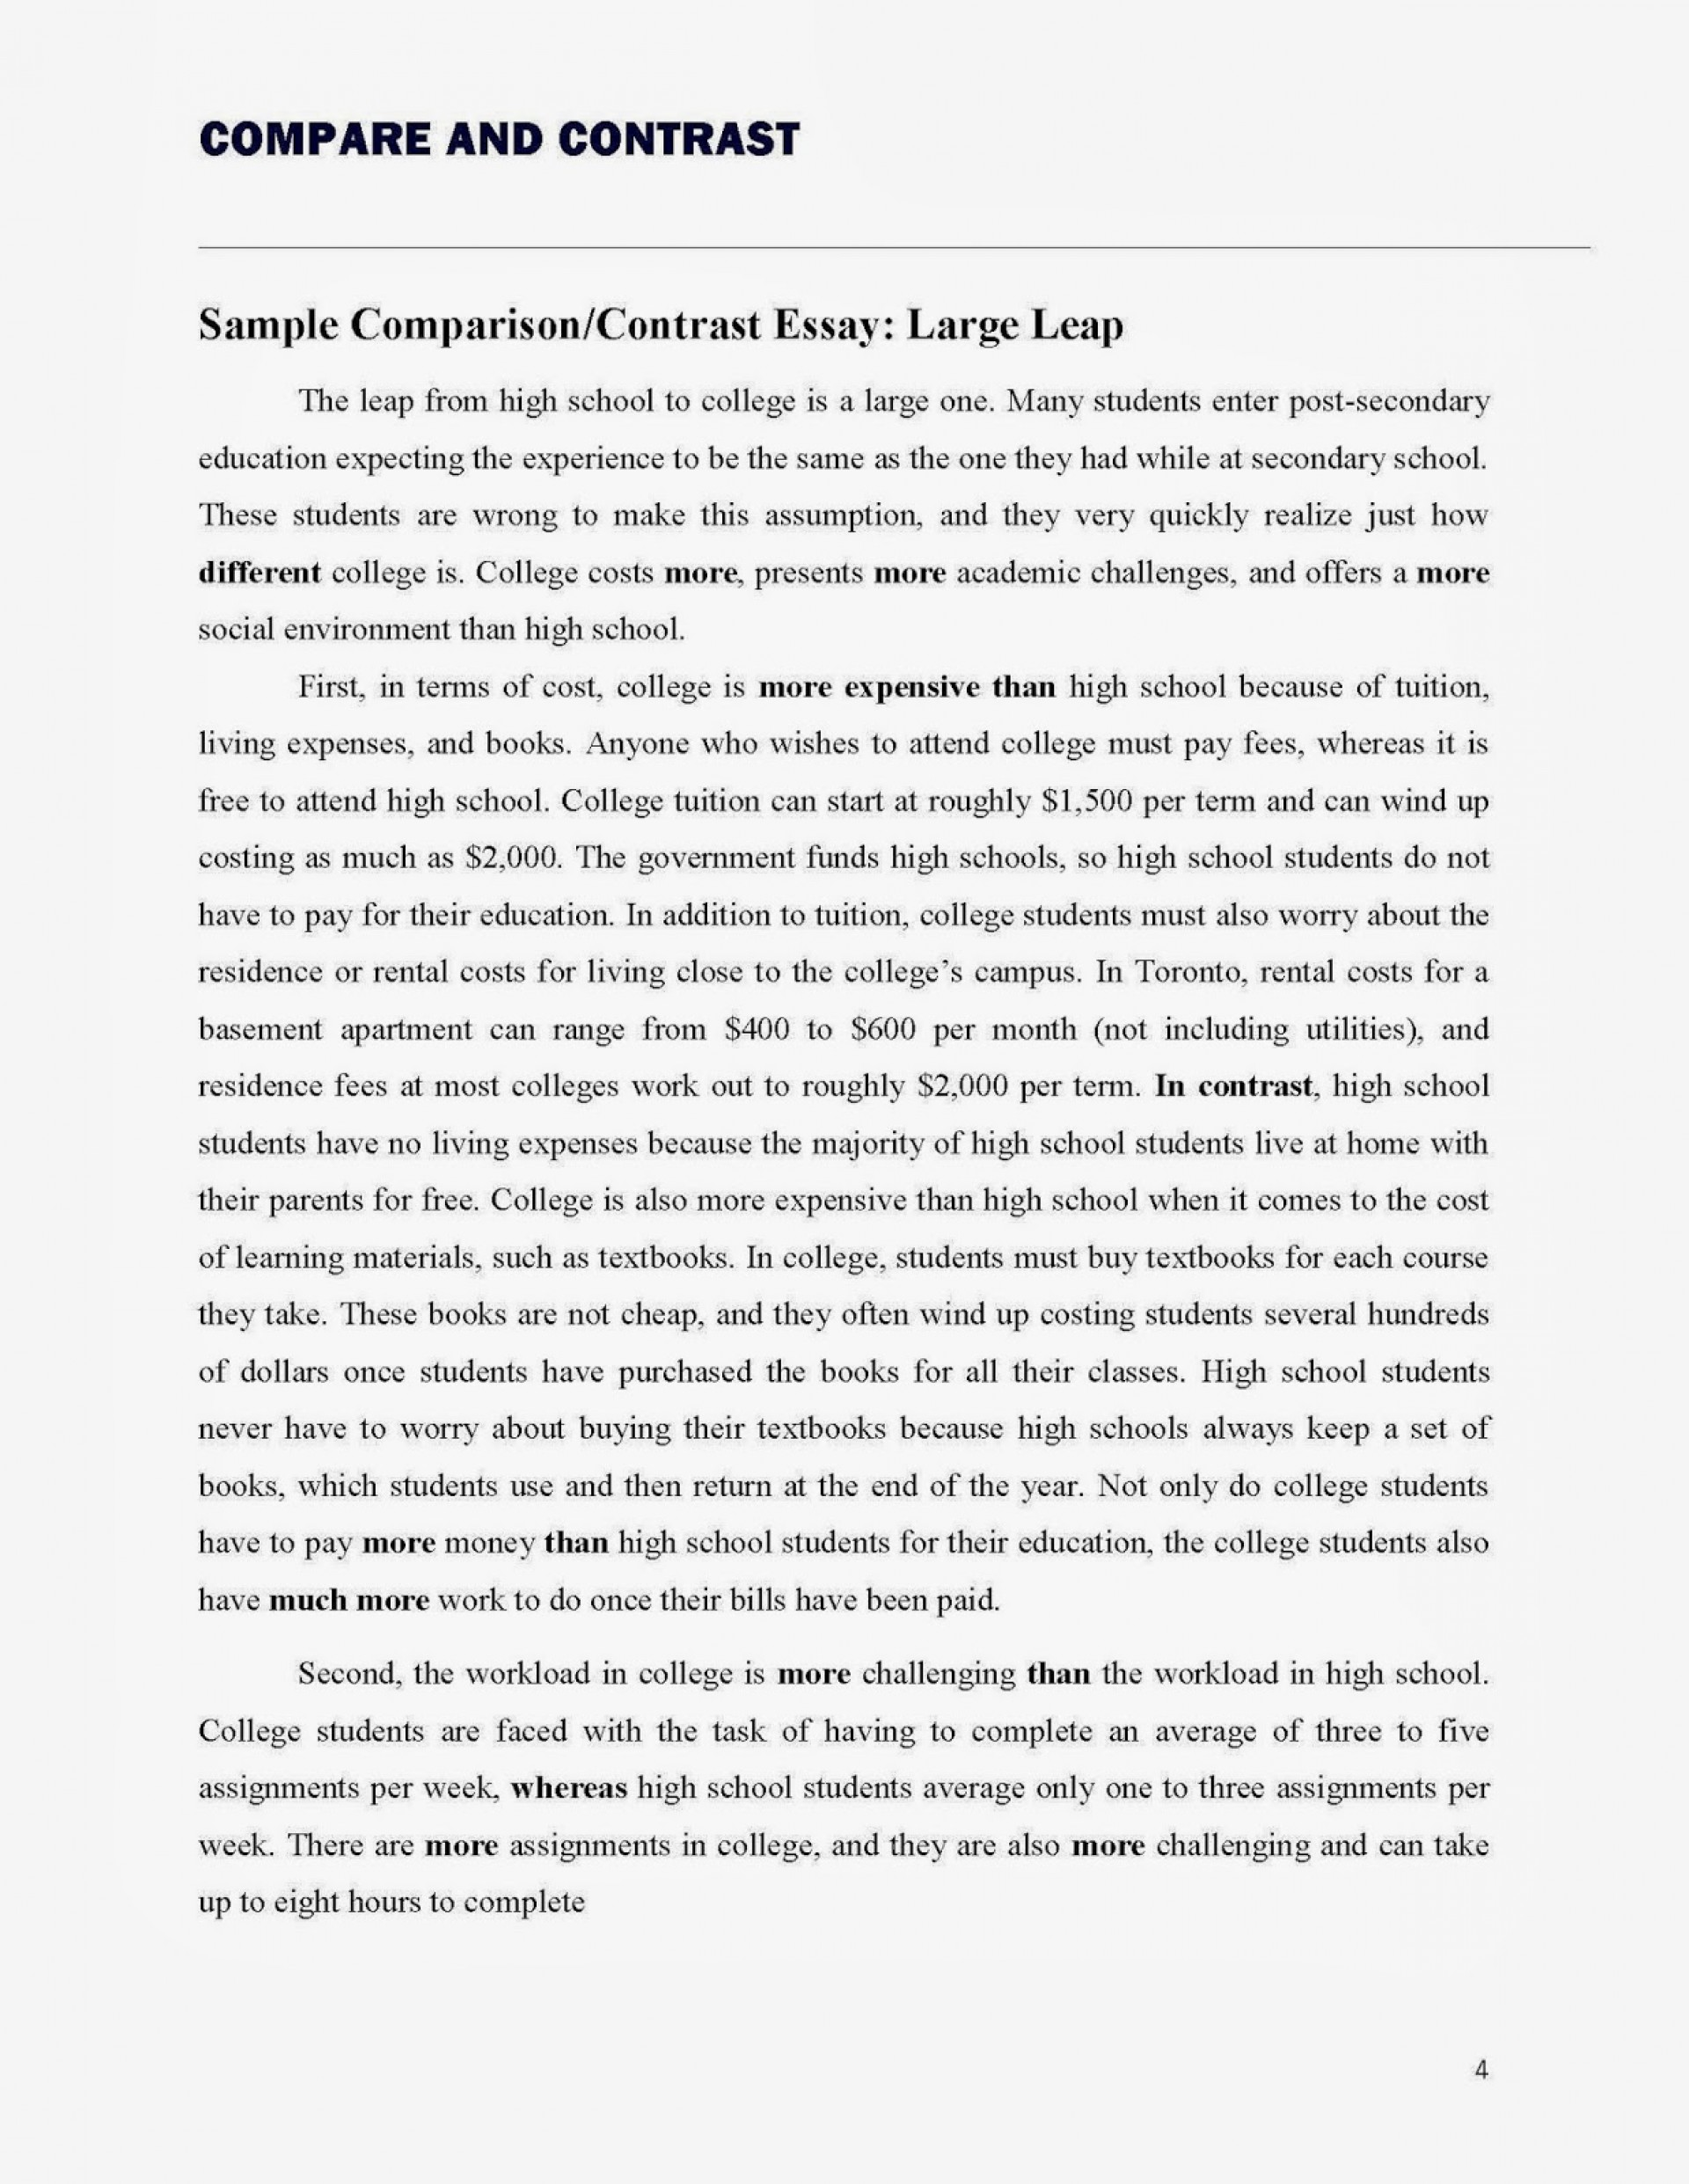 014 Compare2band2bcontrast2bessay Page 4 Essay Example Ucf Prompt Archaicawful 2017 1920